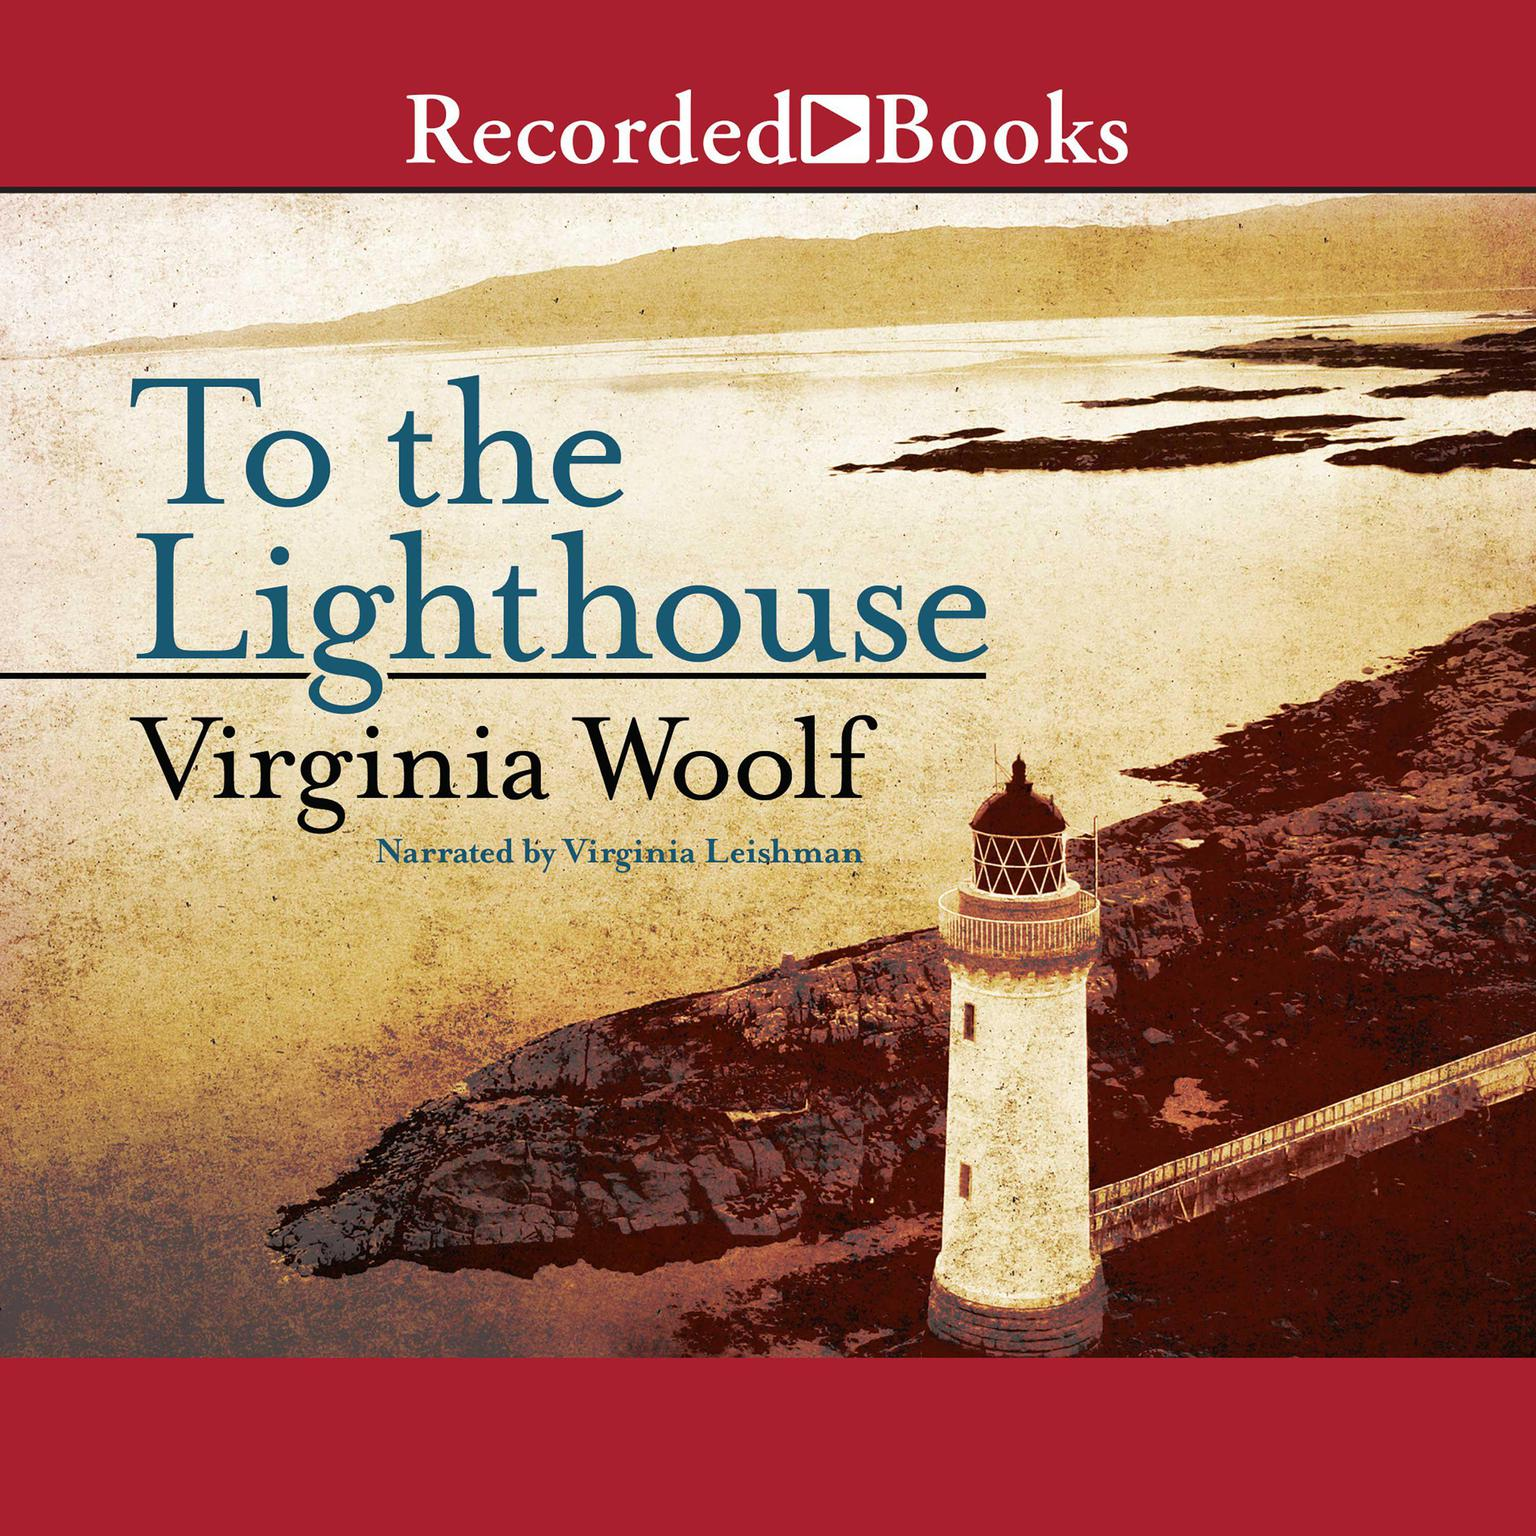 critical essays on to the lighthouse by virginia woolf Madeline moore's the short season between two silences: the mystical and political in the novels of virginia woolf is not a collection of critical essays or directly connected to the woolf centenary it is however a critical work that has both strength and weaknesses let me begin with the latter.